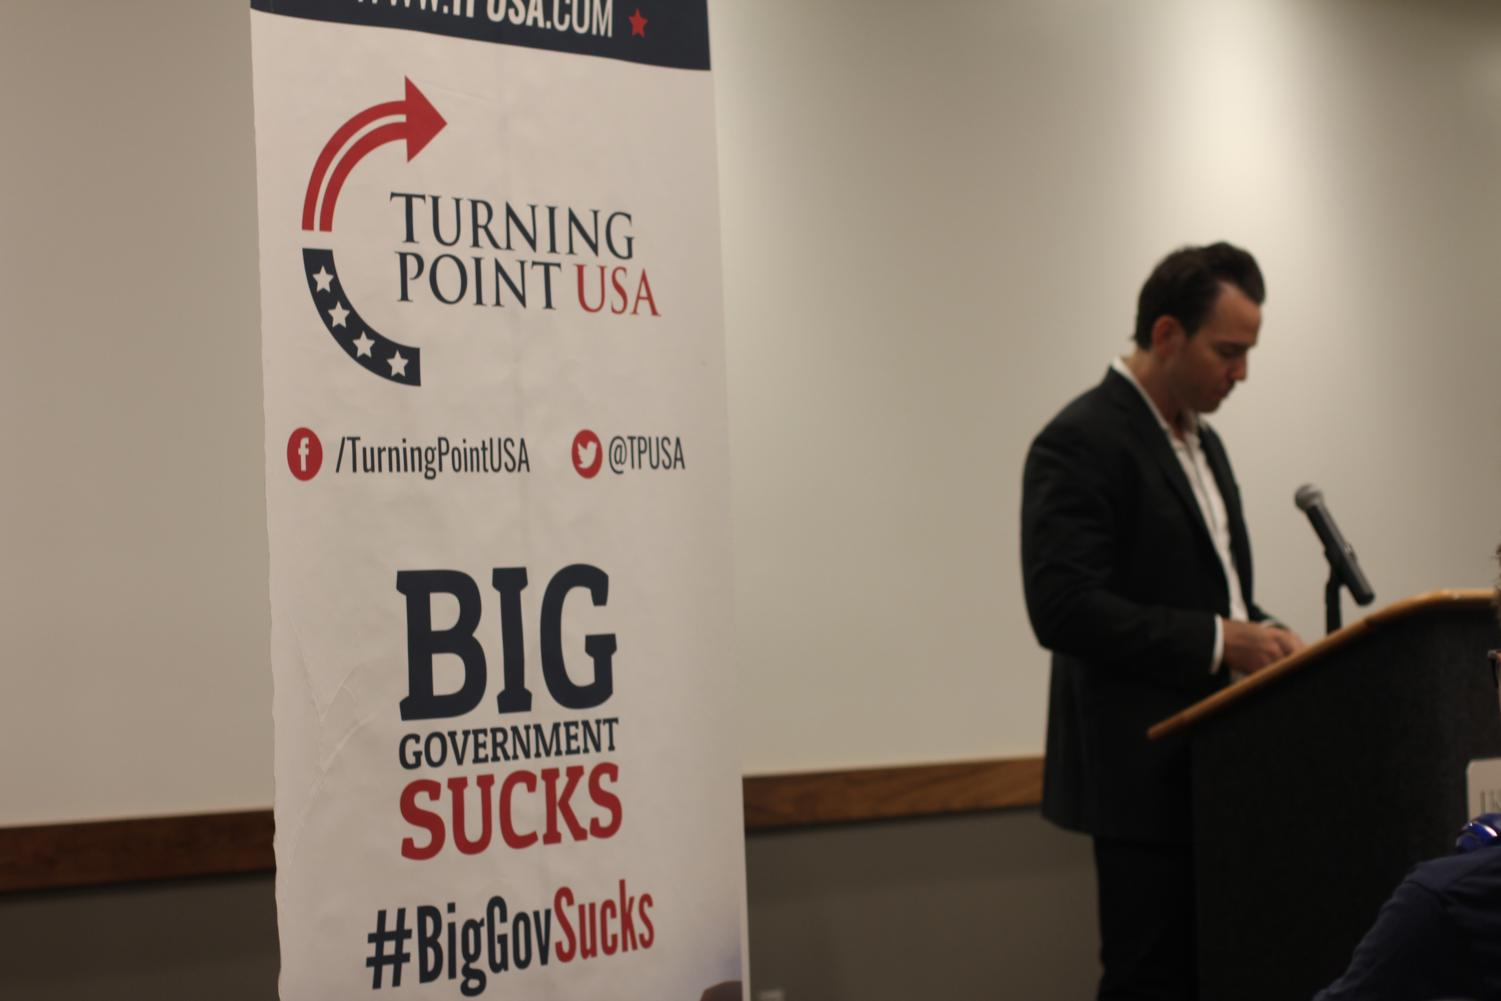 Assemblymember Kevin Kiley takes the stage on Thursday, Sept. 26 at an event organized by Sac State's campus chapter of Turning Point USA, a conservative group. The chapter's president Megan Masten said 69 people were in attendance at Thursday's event.